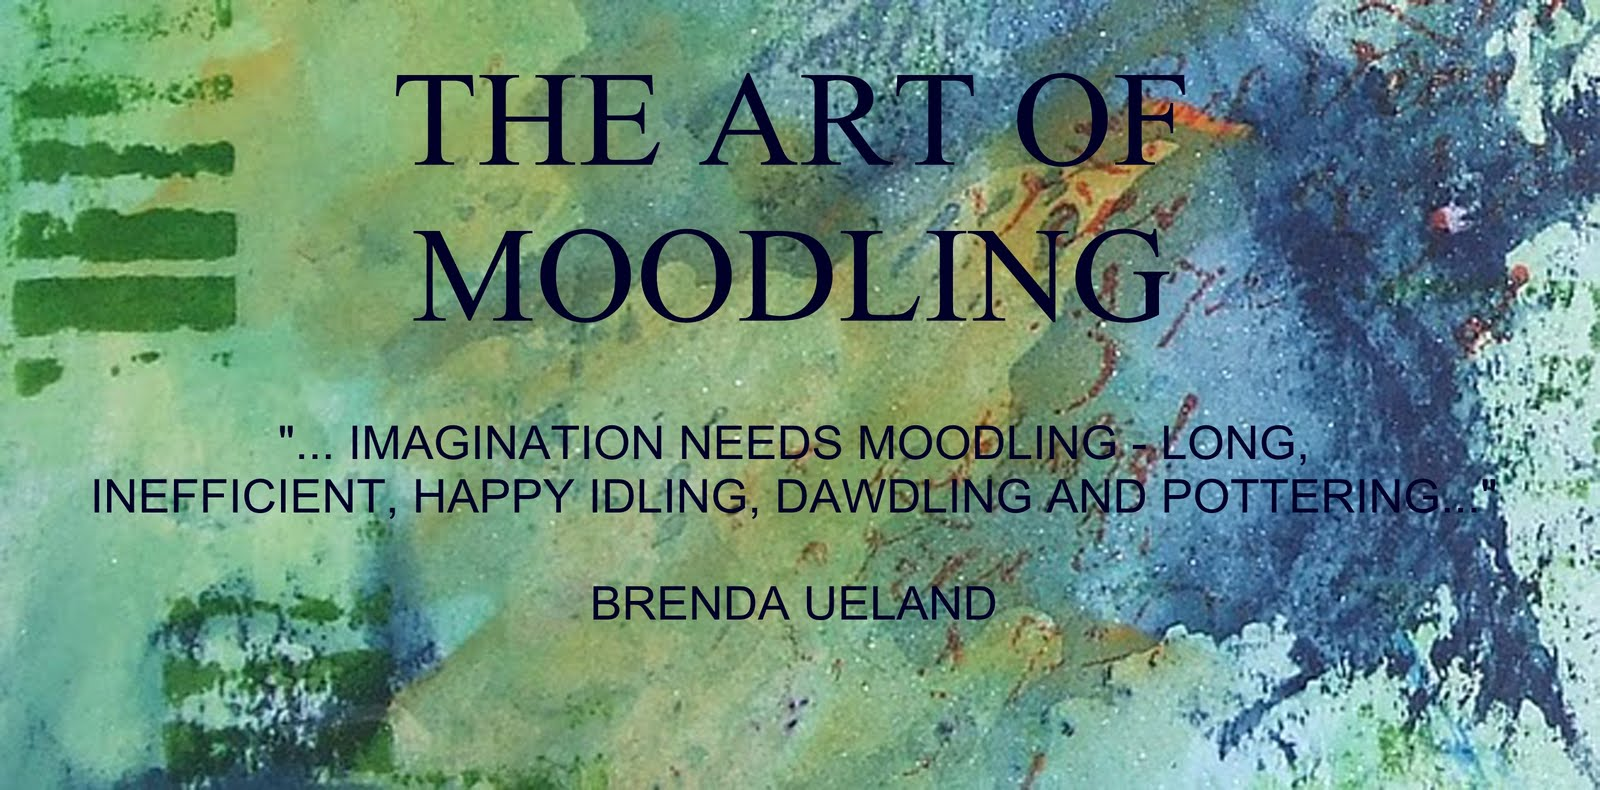 the art of moodling